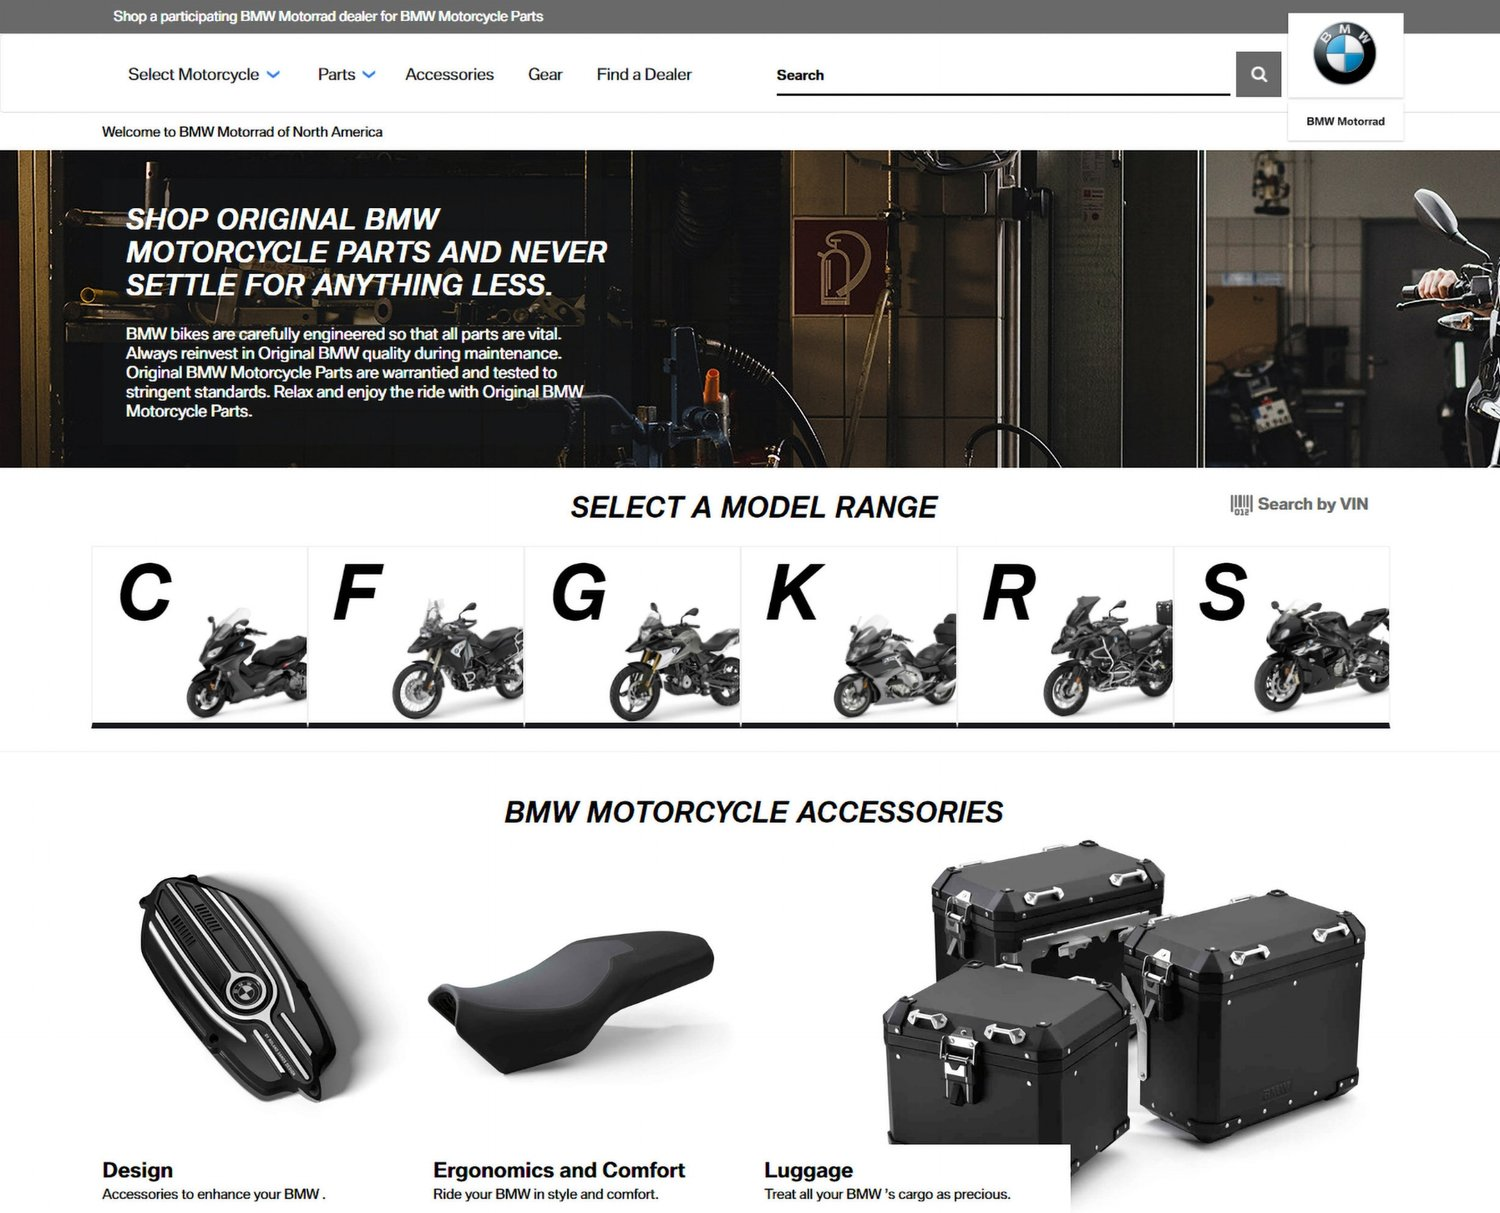 UPSHIFT BMW MOTORRAD USA LAUNCHES E-COMMERCE SITE FOR PARTS